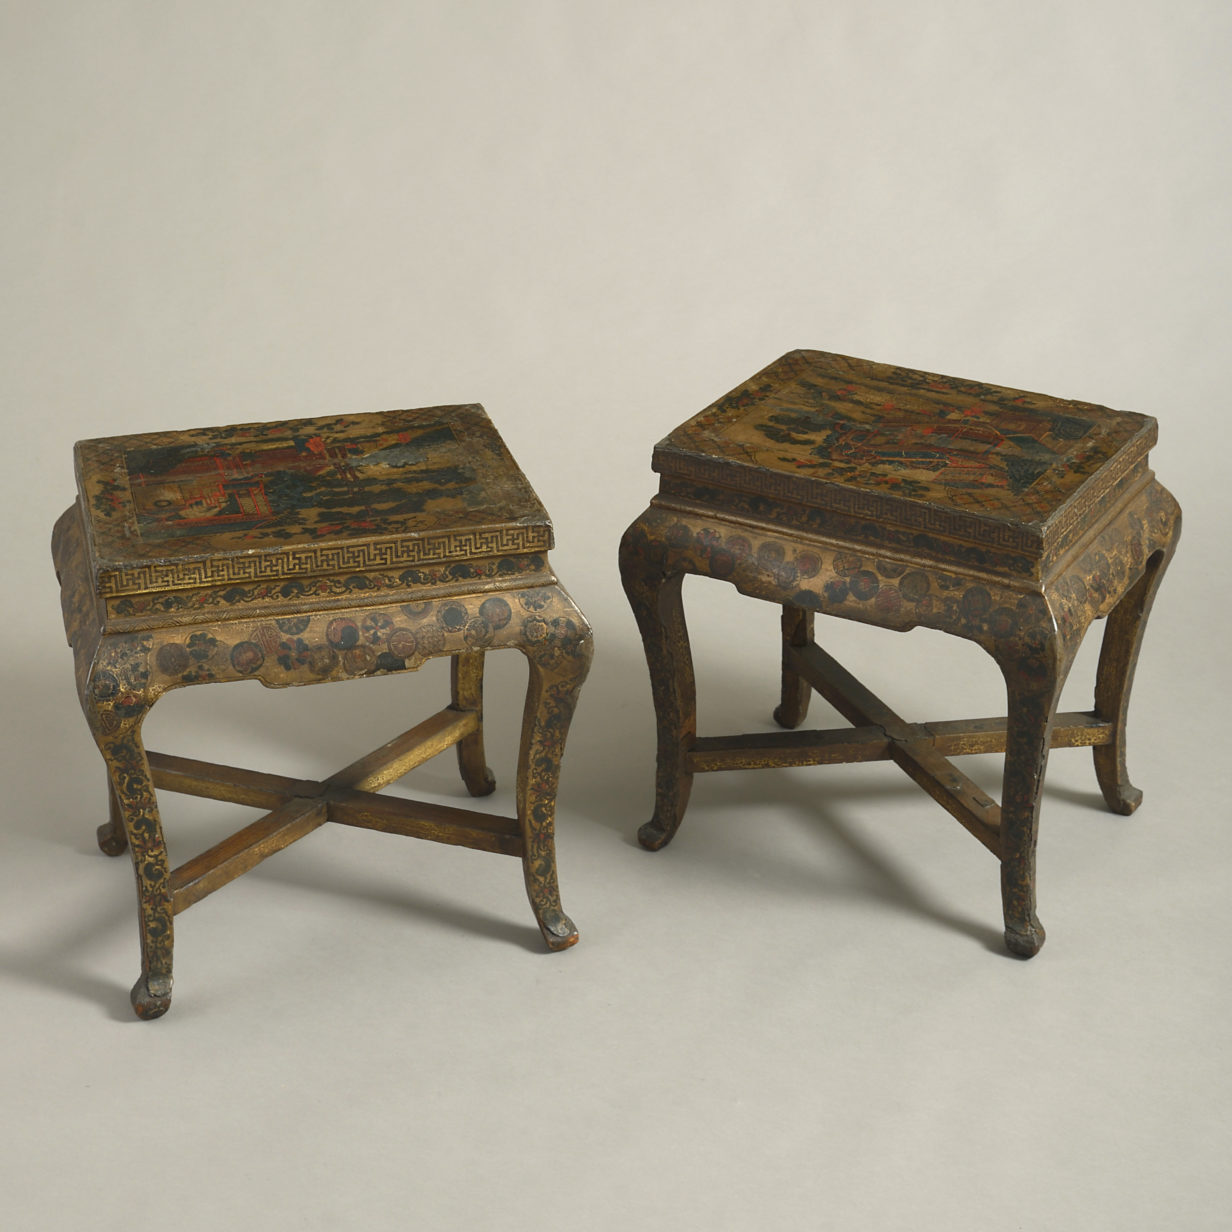 Pair of Lacquer End Tables